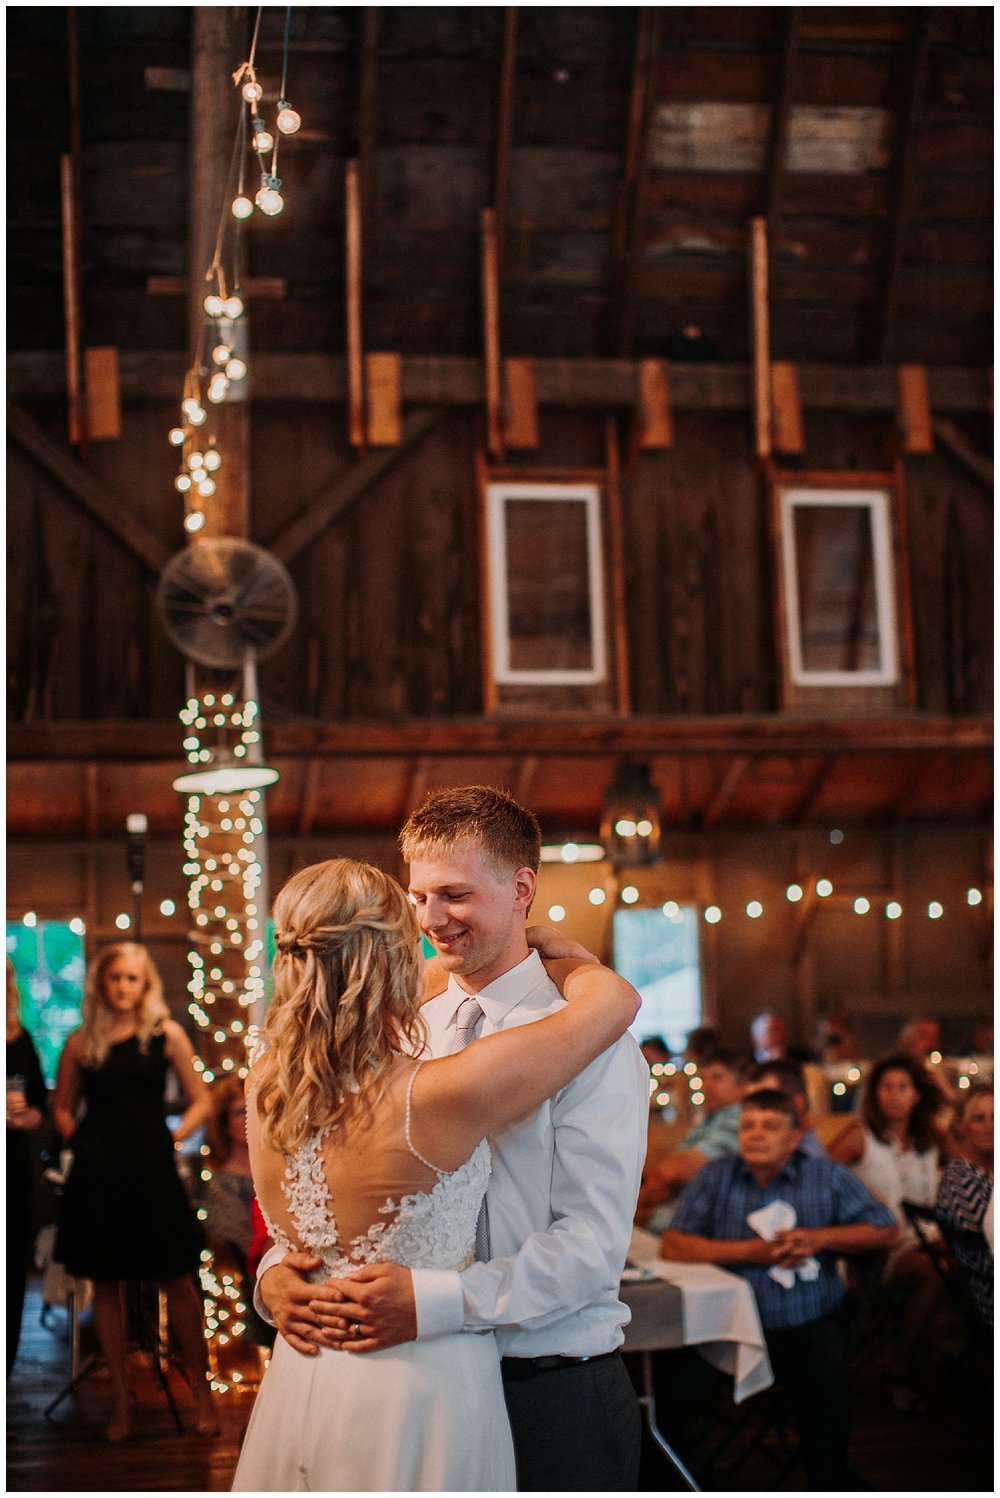 lindybeth photography - persenaire wedding - the old wooden barn-221.jpg